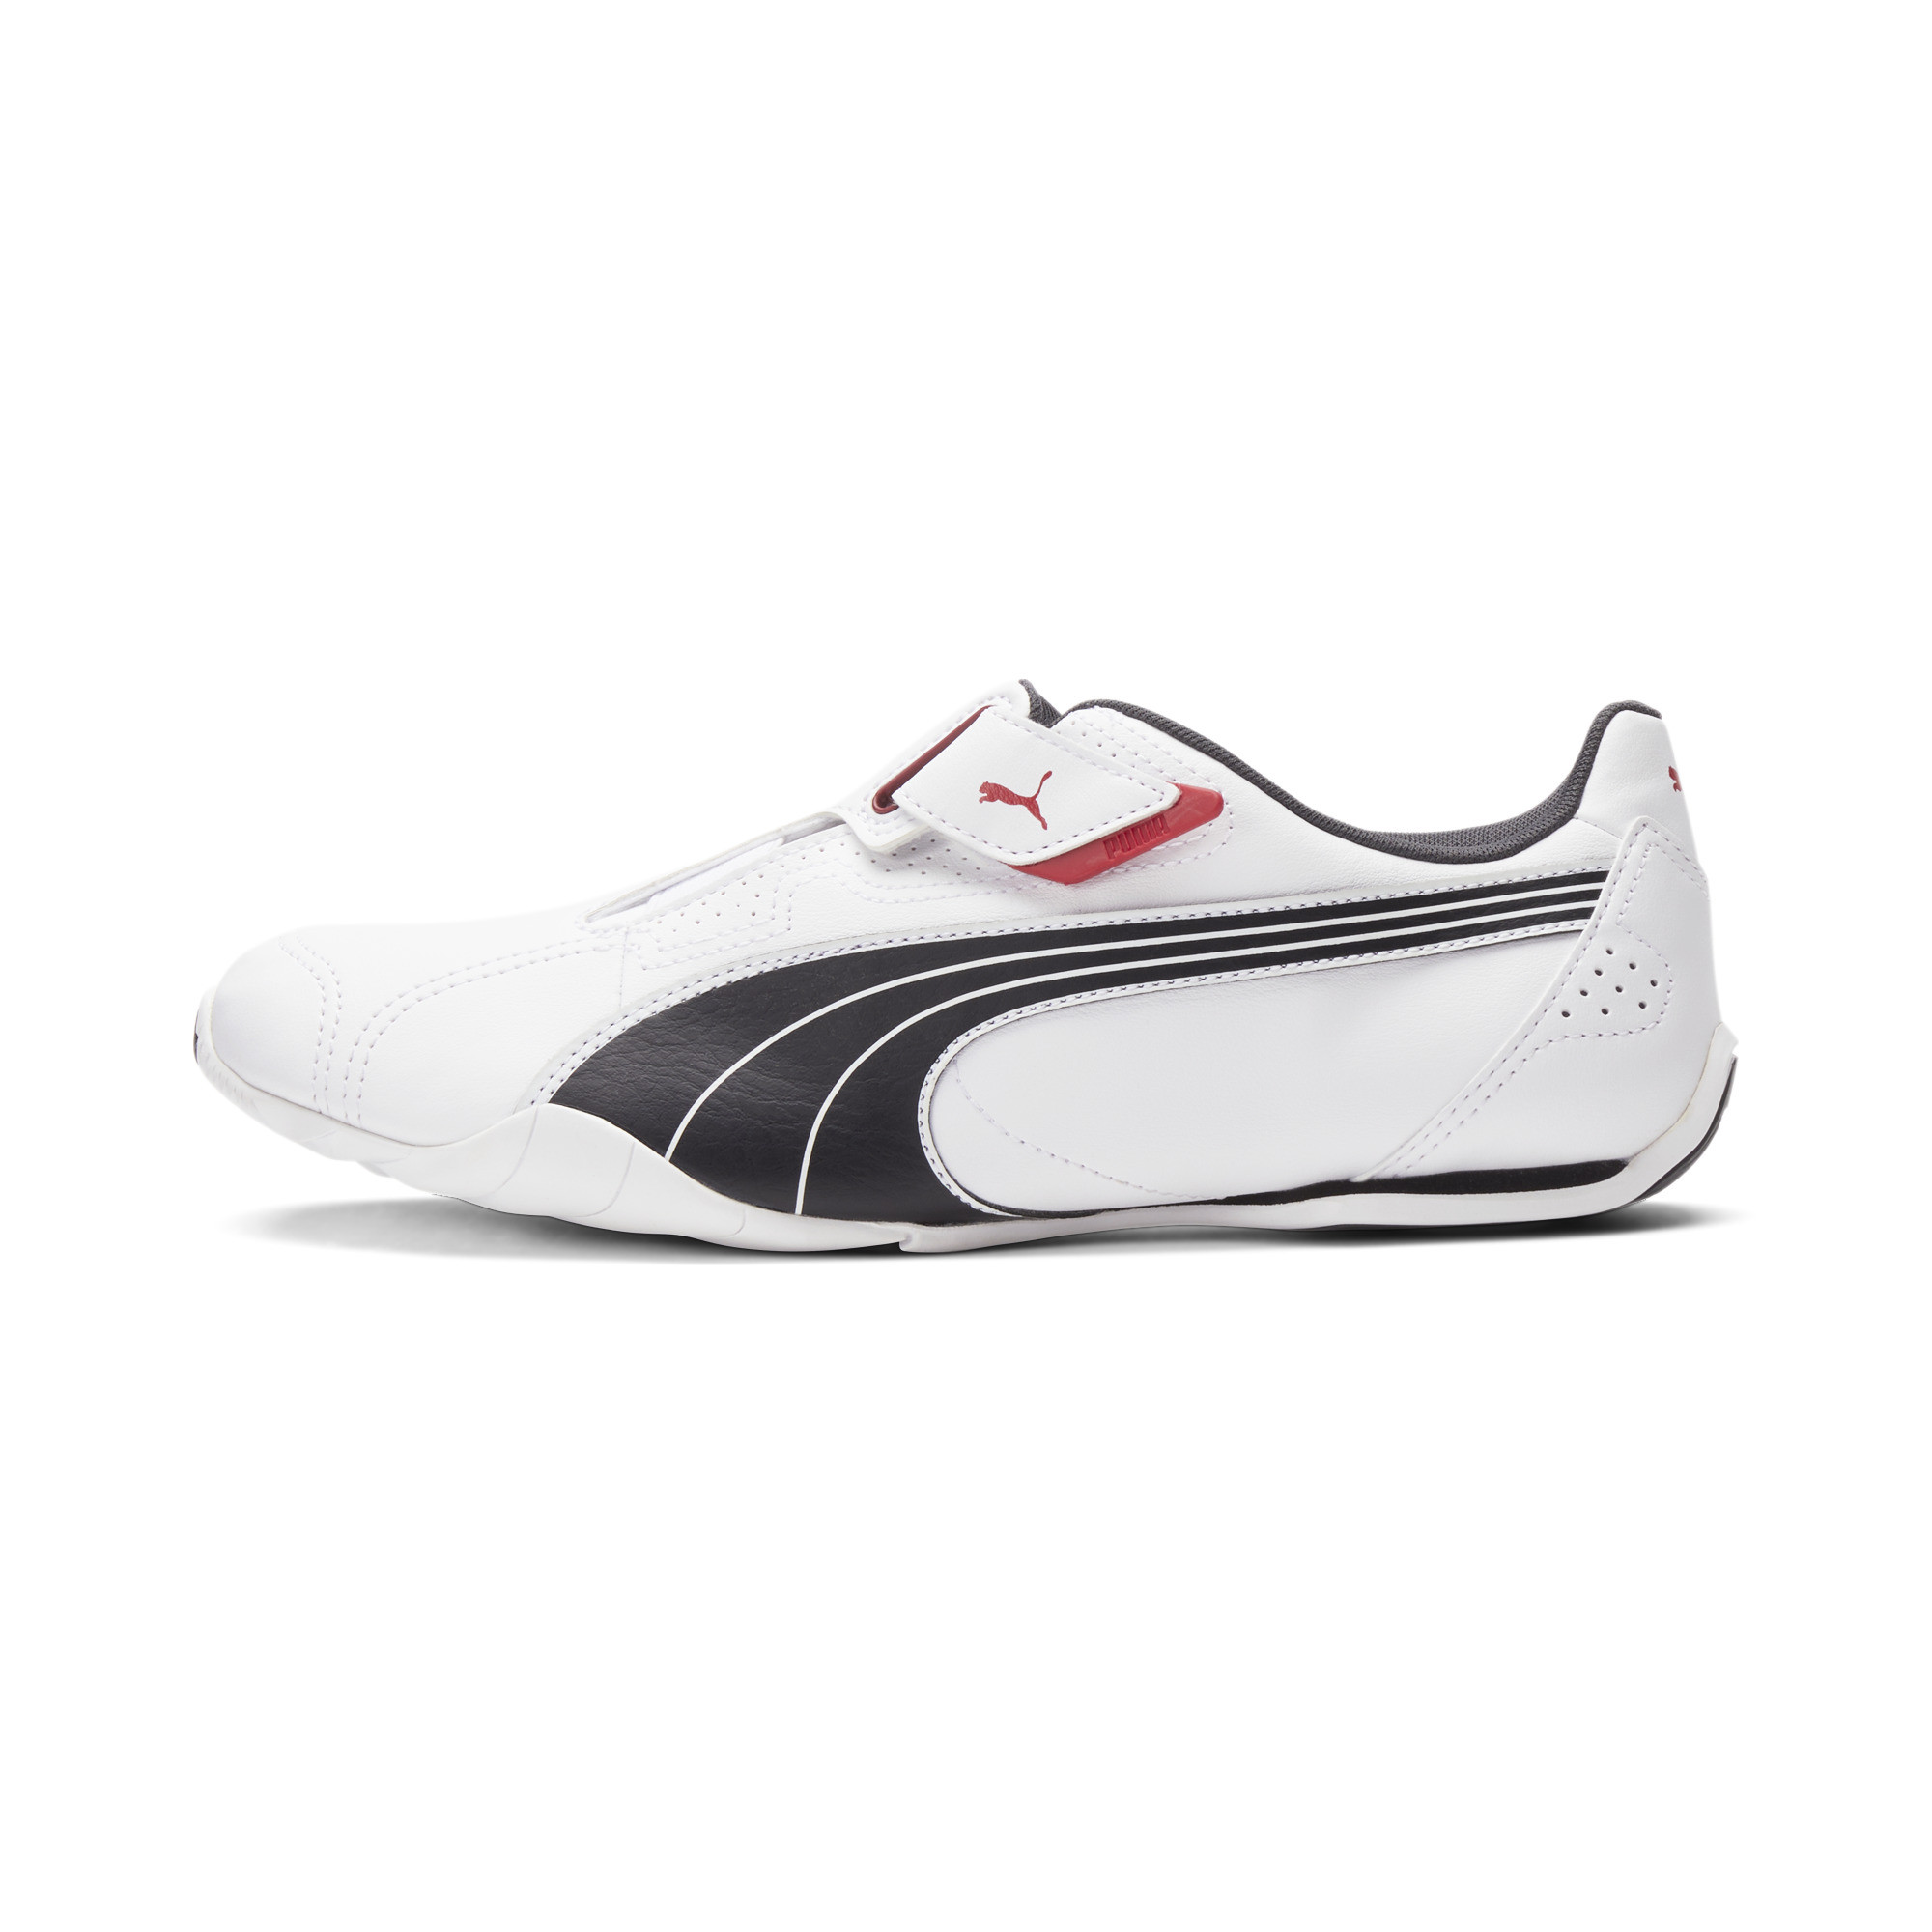 PUMA-Redon-Move-Shoes-Men-Shoe-Sport-Shoe thumbnail 10